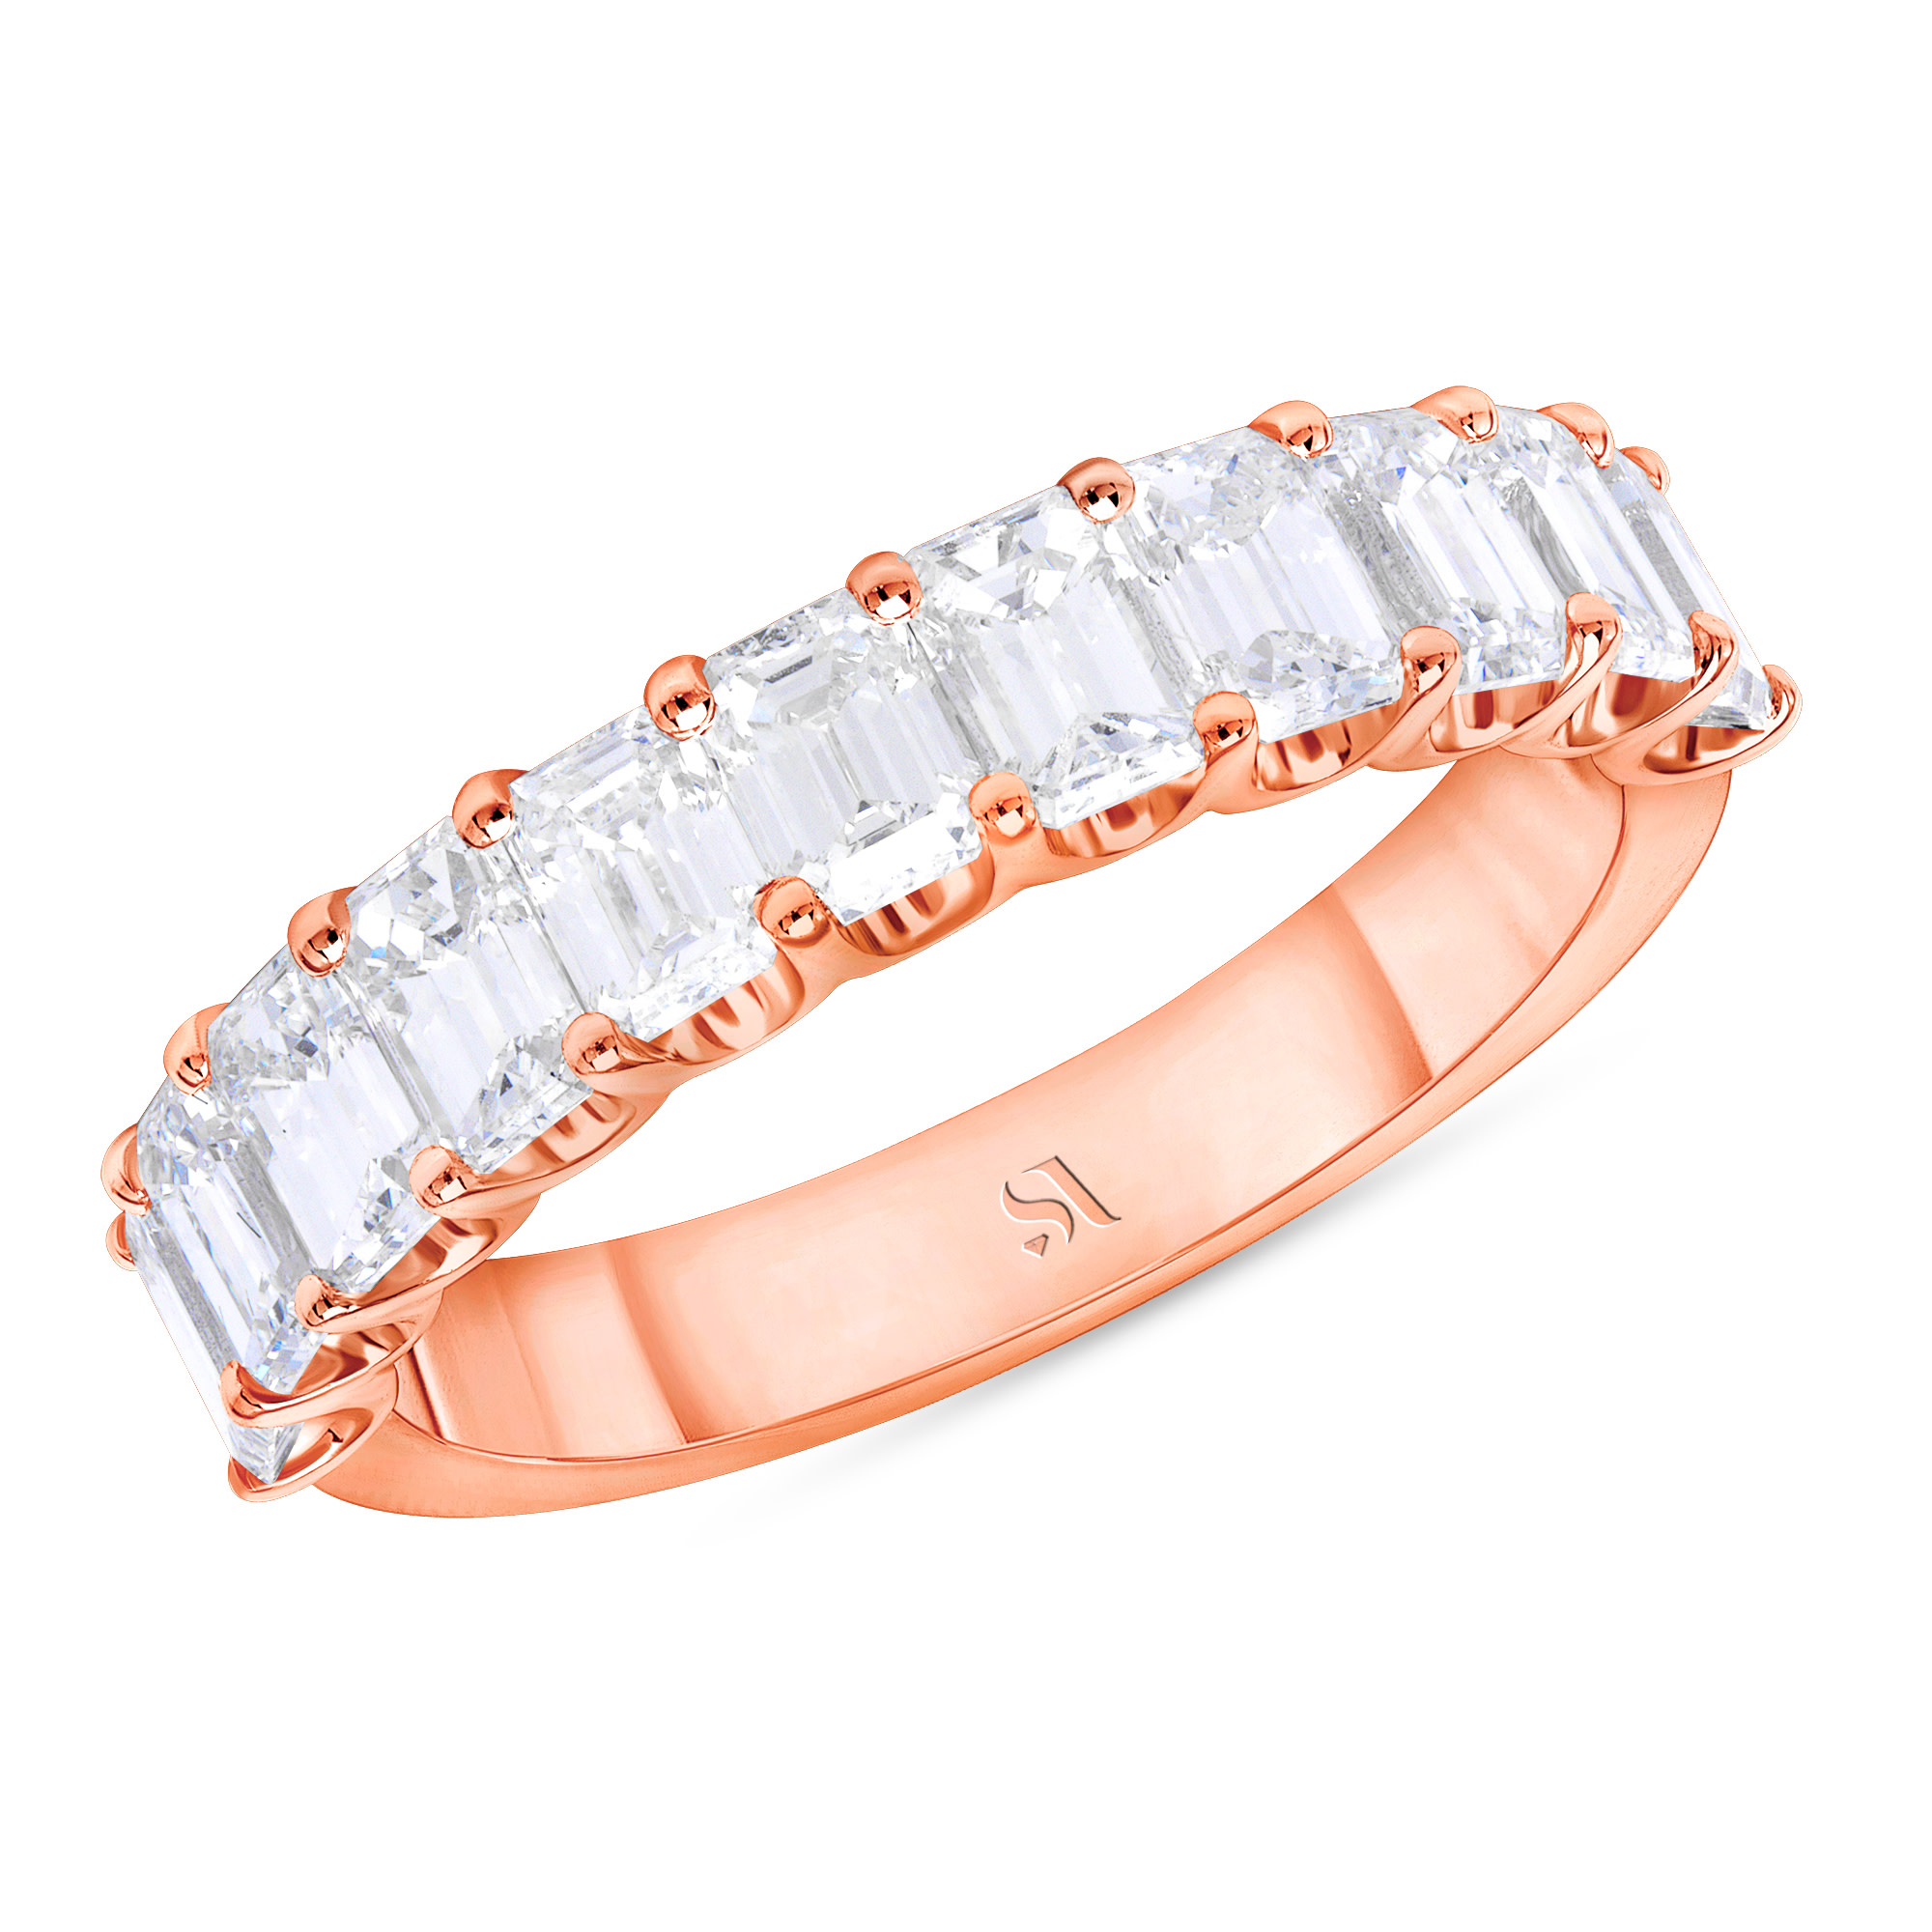 Emerald Cut Diamond Halfway Eternity Band U prongs | Sabrina A Inc